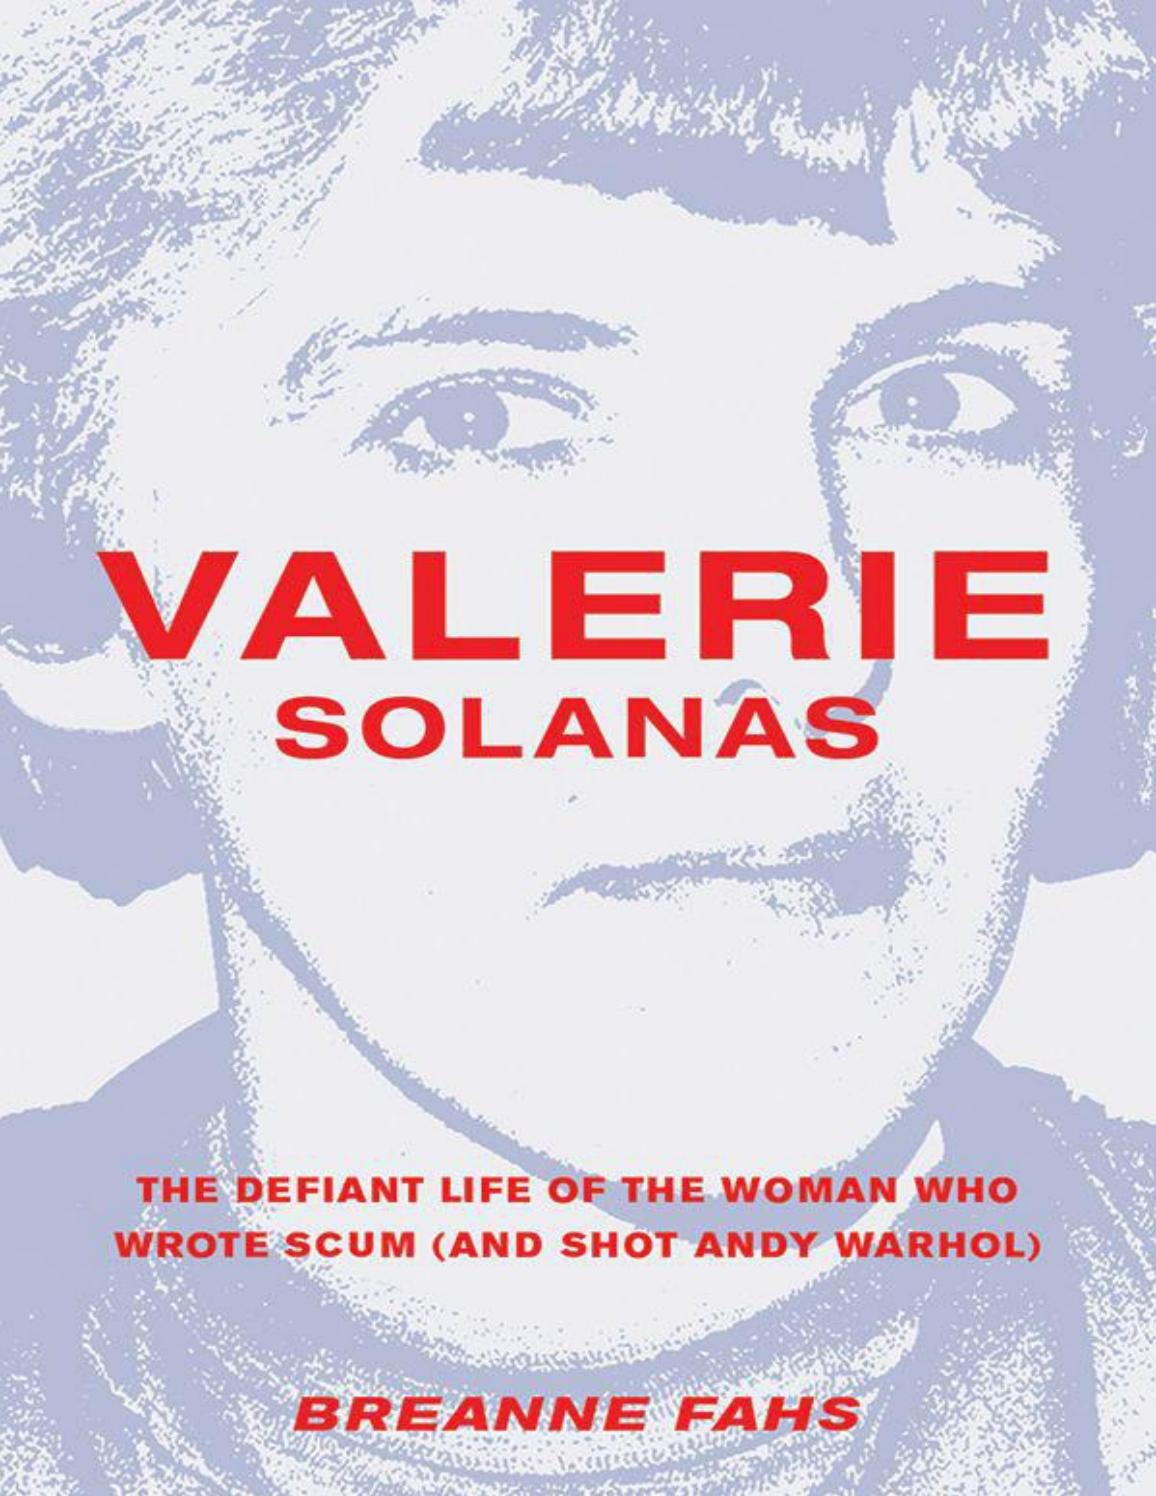 Valerie Solanas, a biography written by Breanne Fahs by